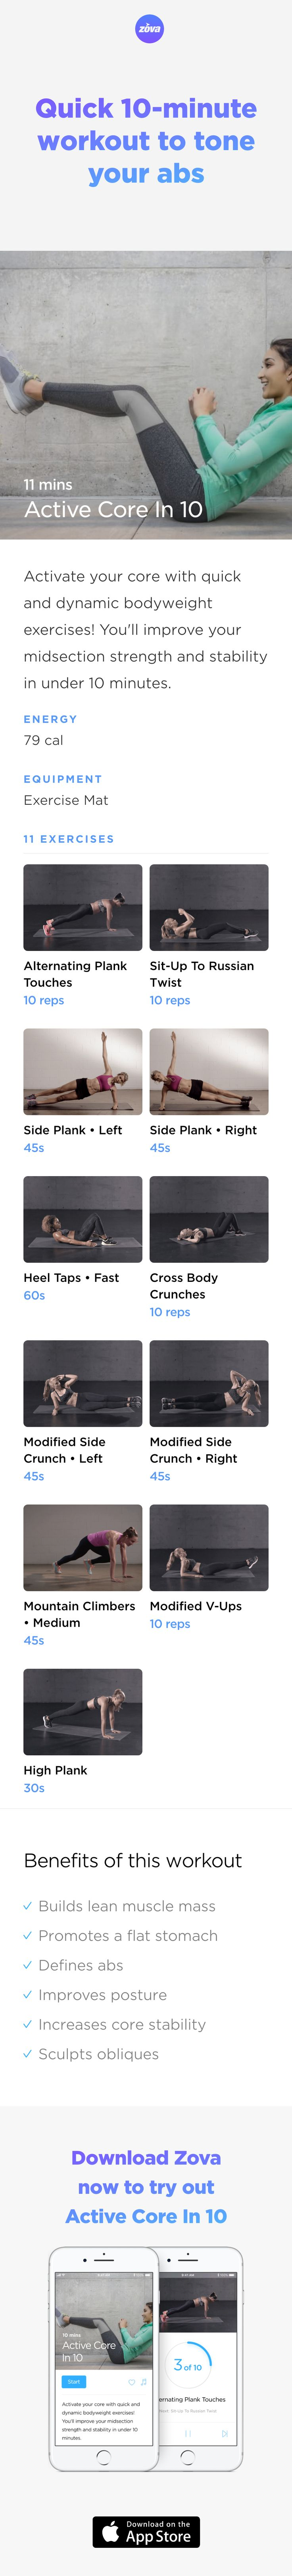 Including a new set of exercises in your workout will help to avoid having bored muscles. You'll get fit, faster and be able to burn fat more effectively. This short ab workout is the perfect addition to any fitness regime as it'll get results quickly and can be done anywhere! #abs #workout #fitness